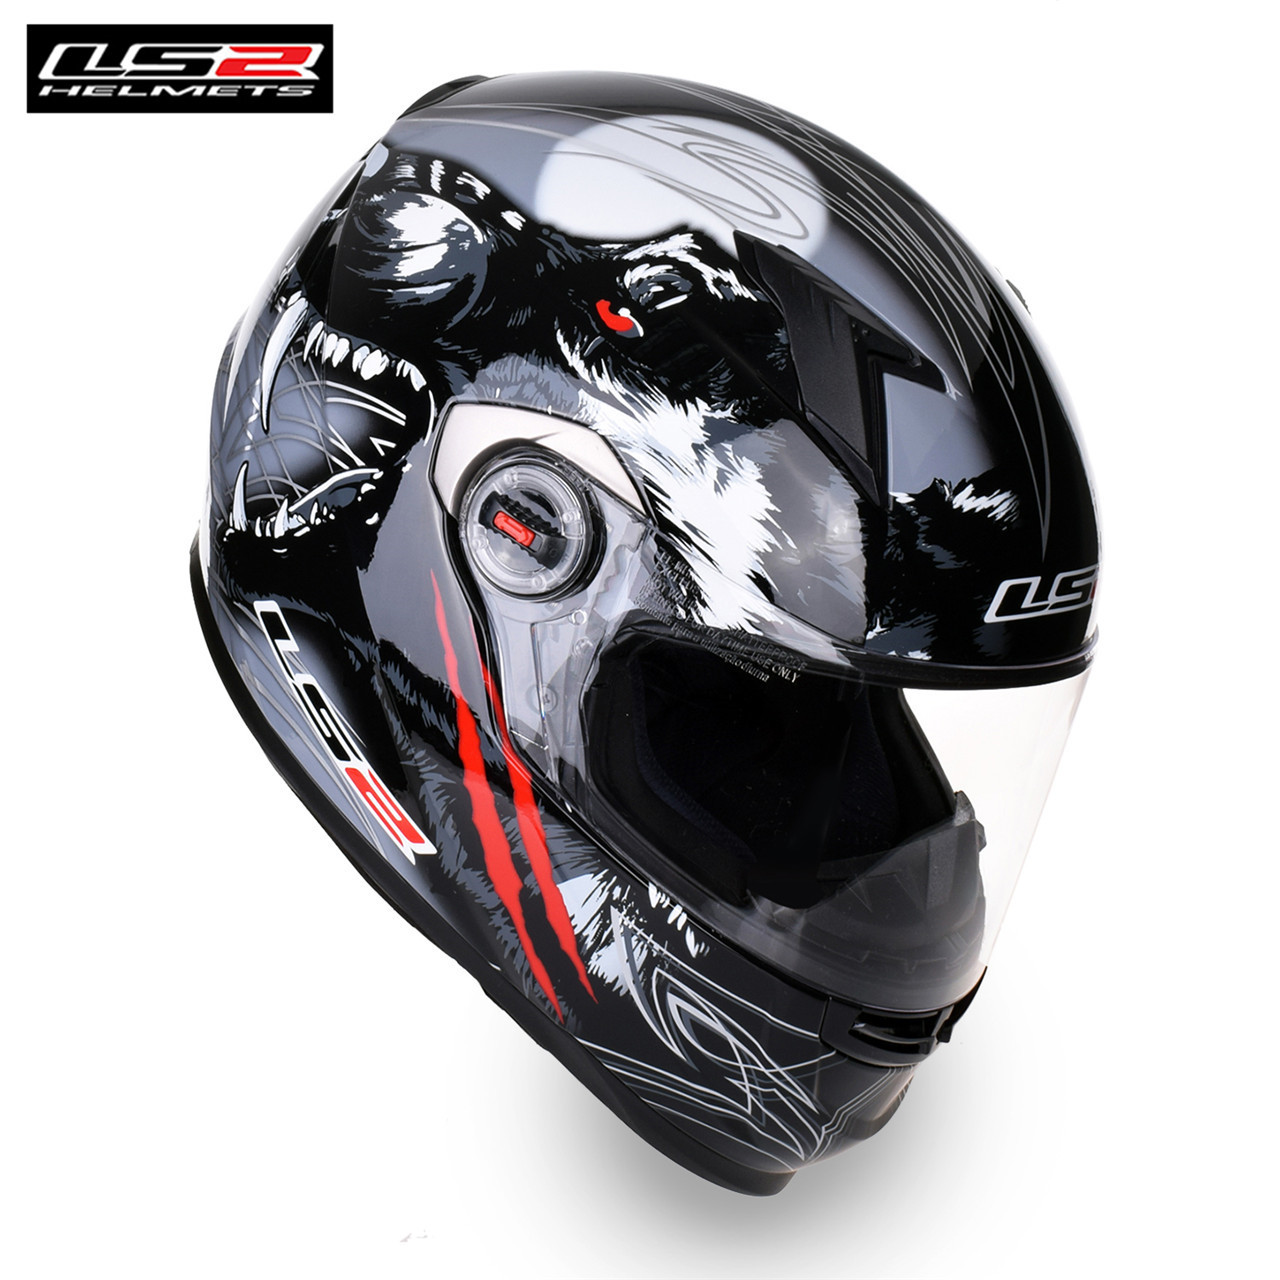 цены LS2 Hot Sales Motorcycle Helmet Full Face Racing Kask Casque moto Cascos Capacete Helmets Motor Bike